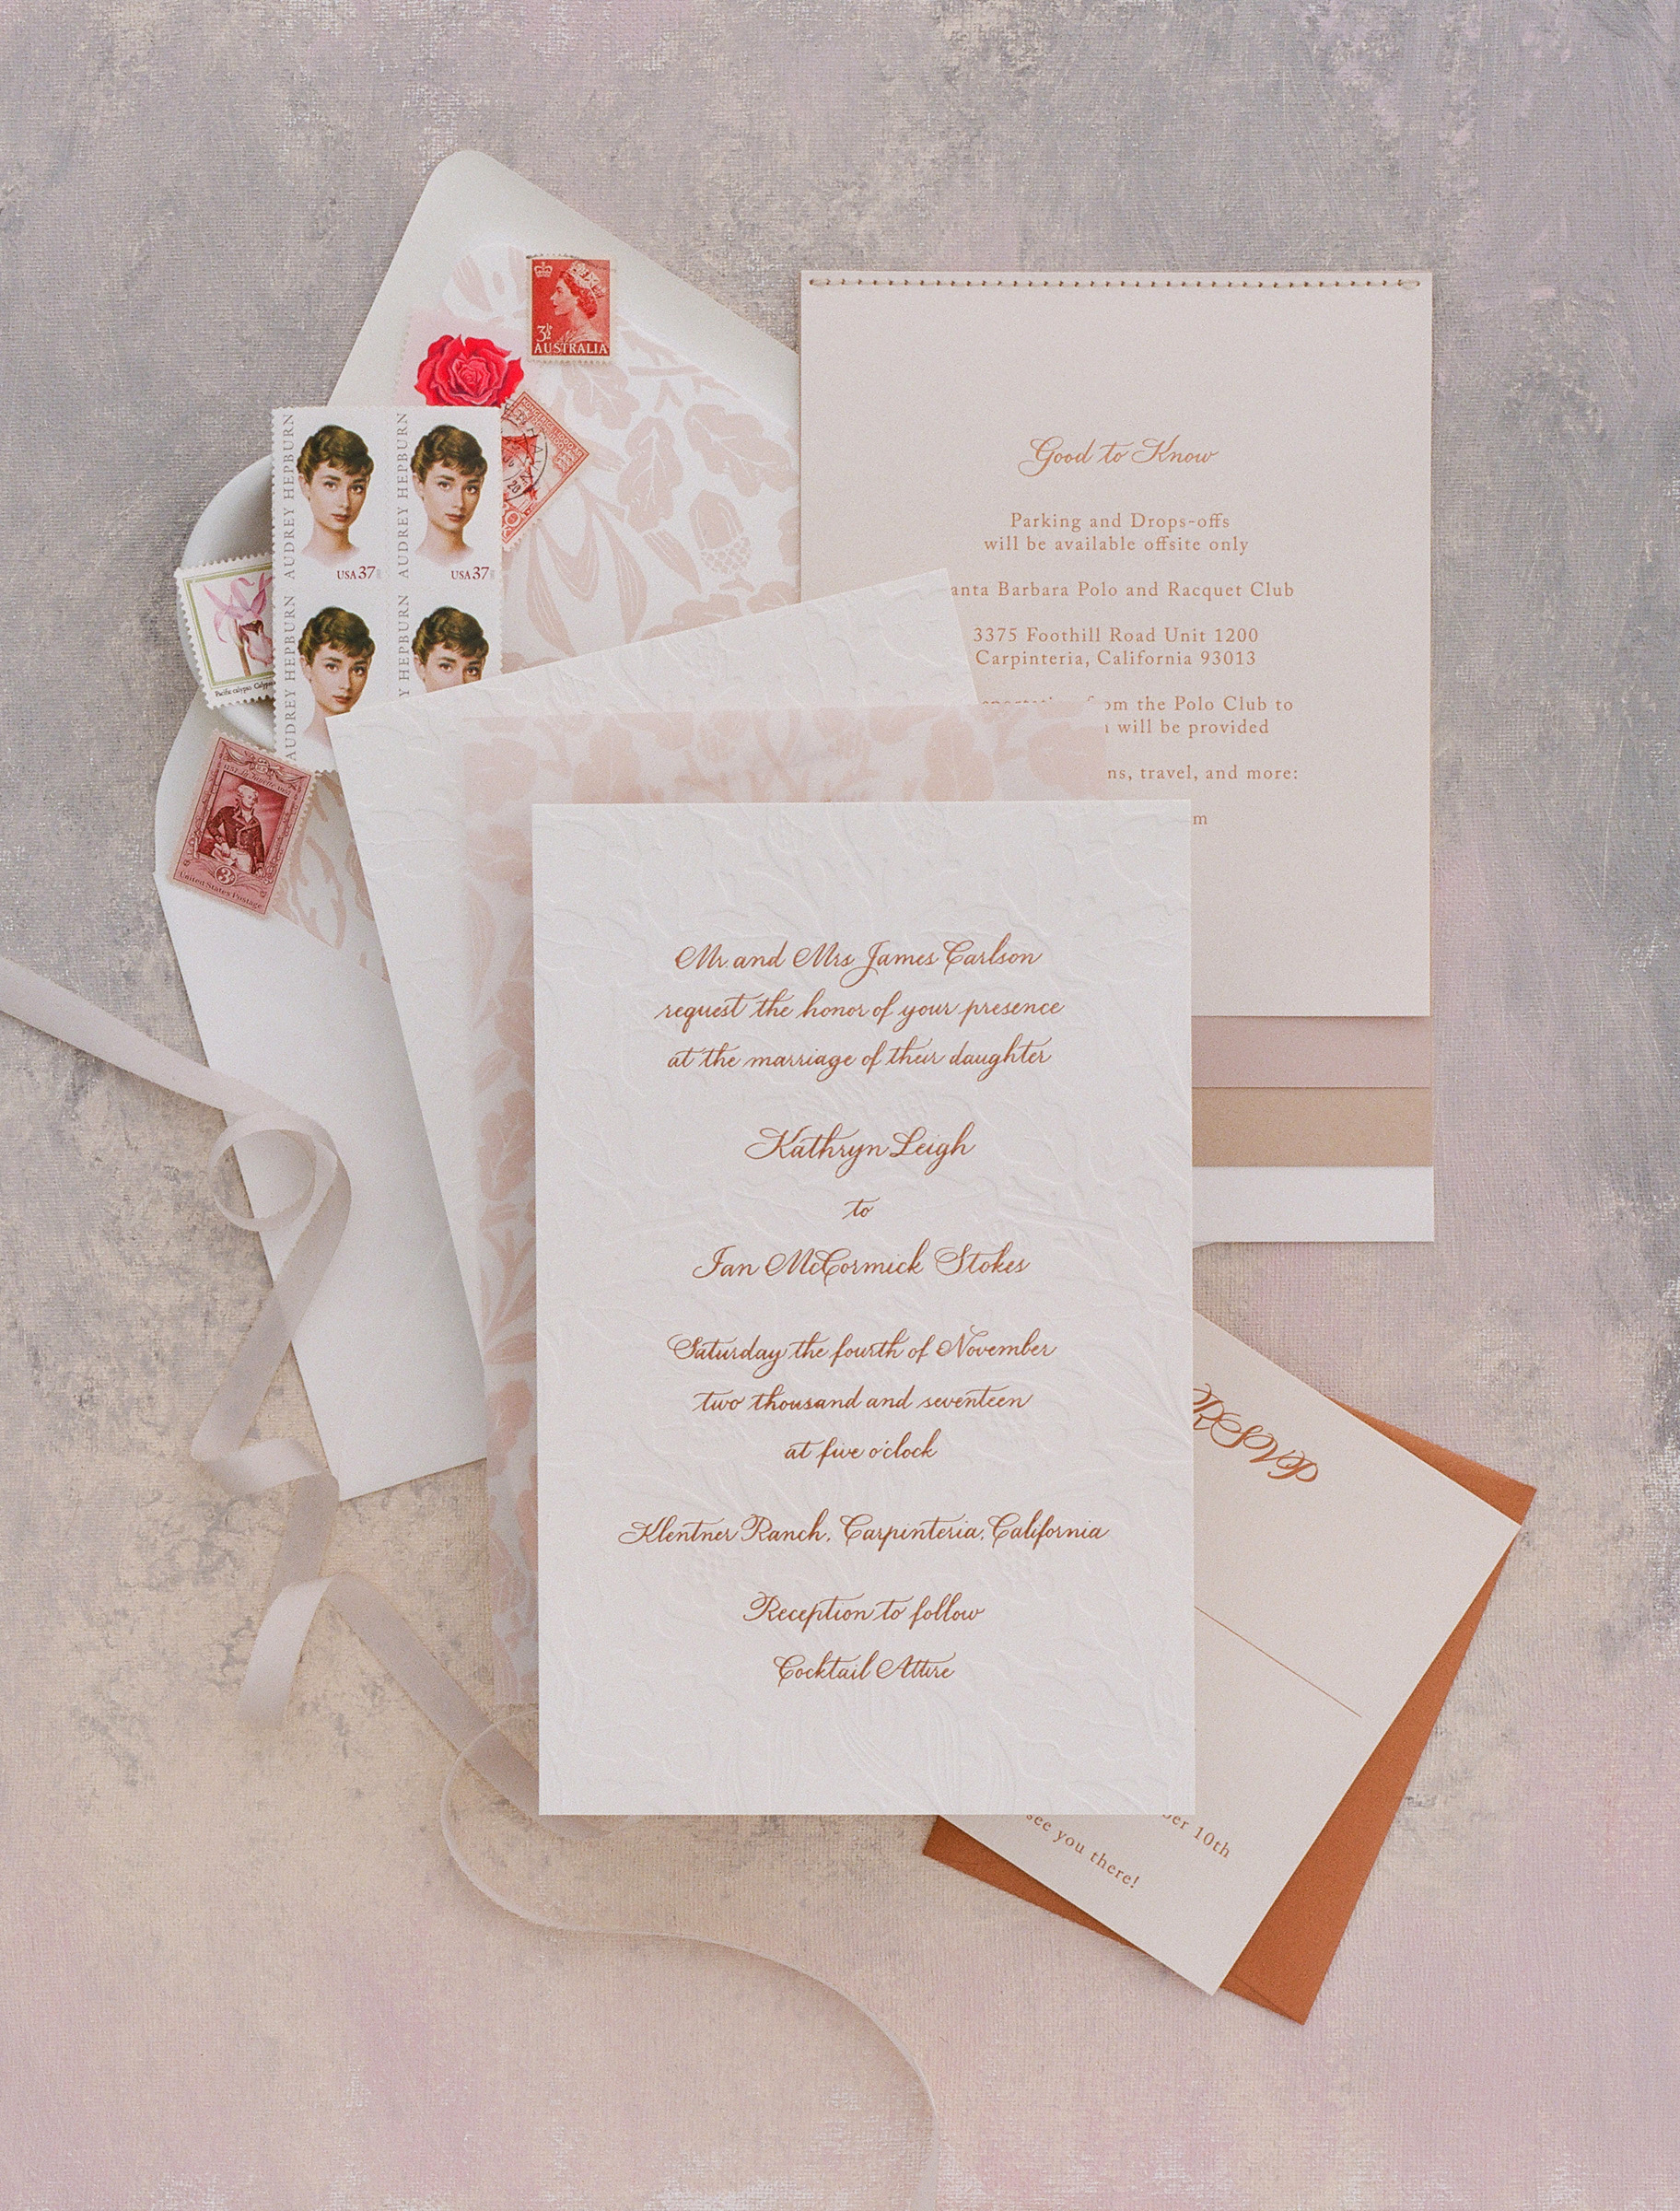 kathryn ian wedding invite